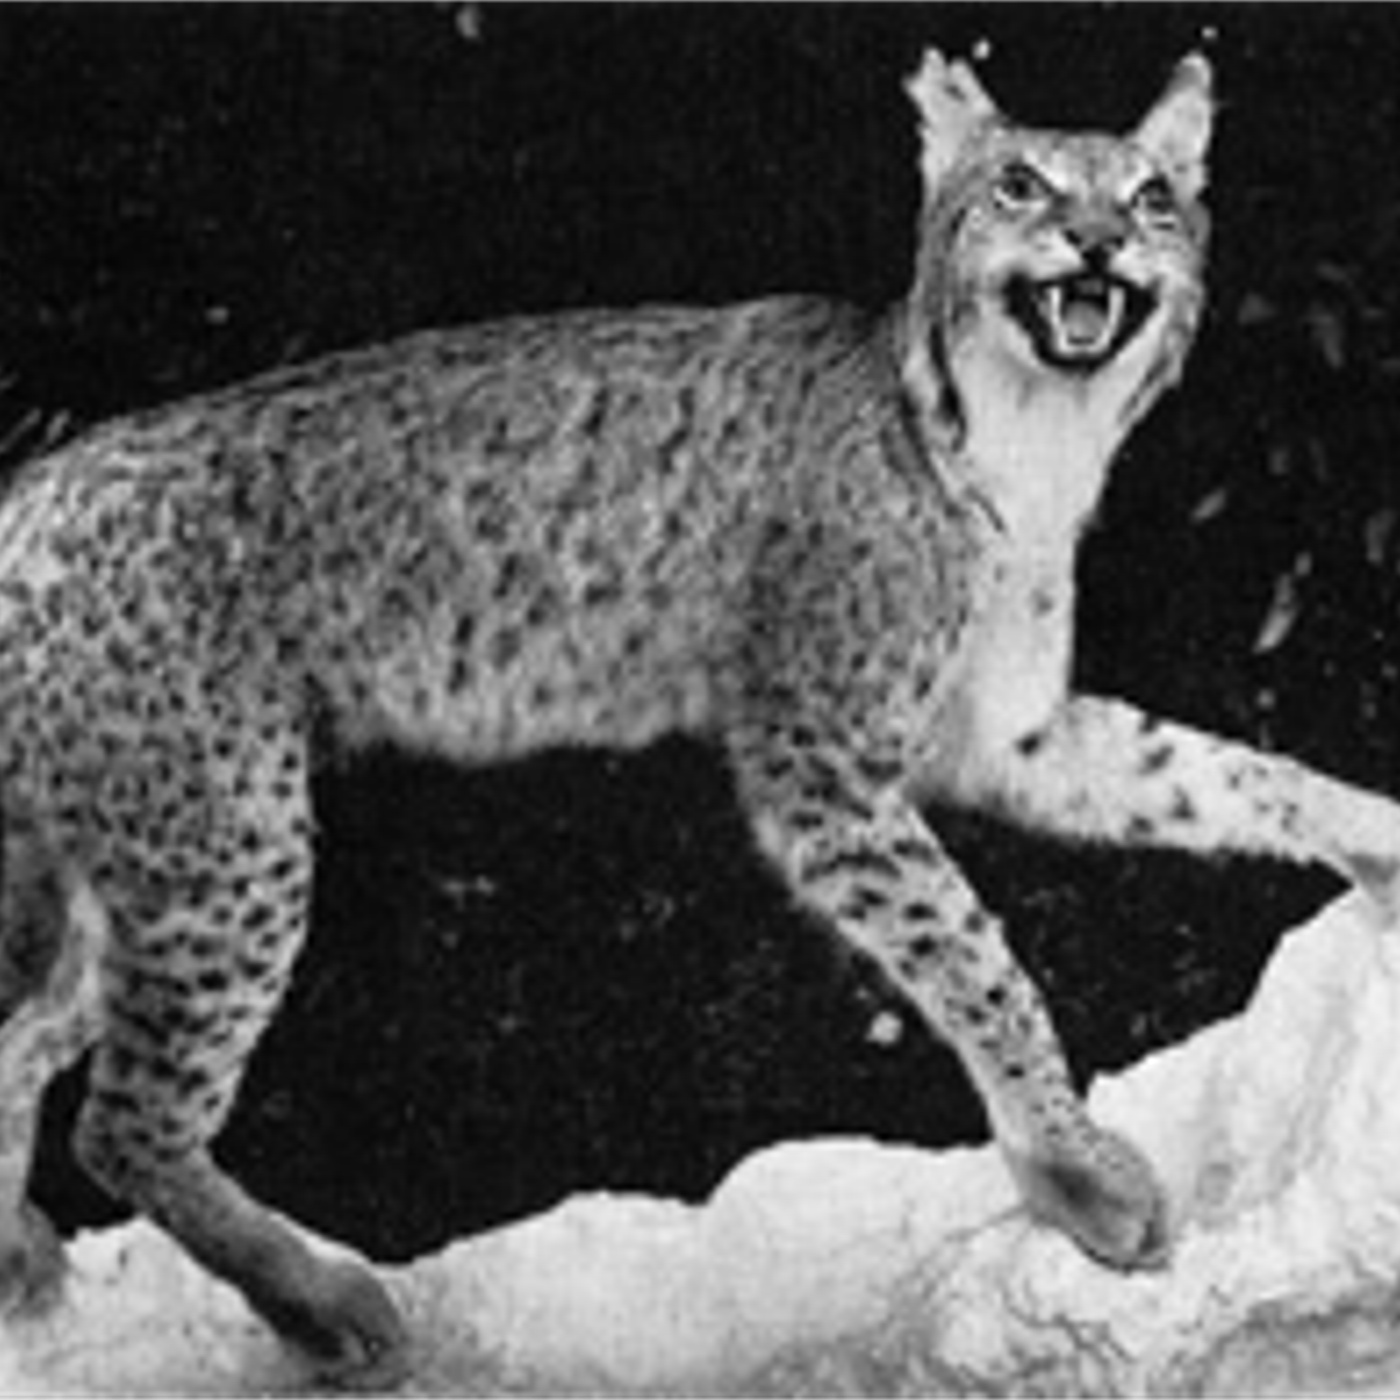 Muzej Kosova, Priština, vir: Đ. Mirić (The Lynx populations of the Balkan peninsula, 1981)